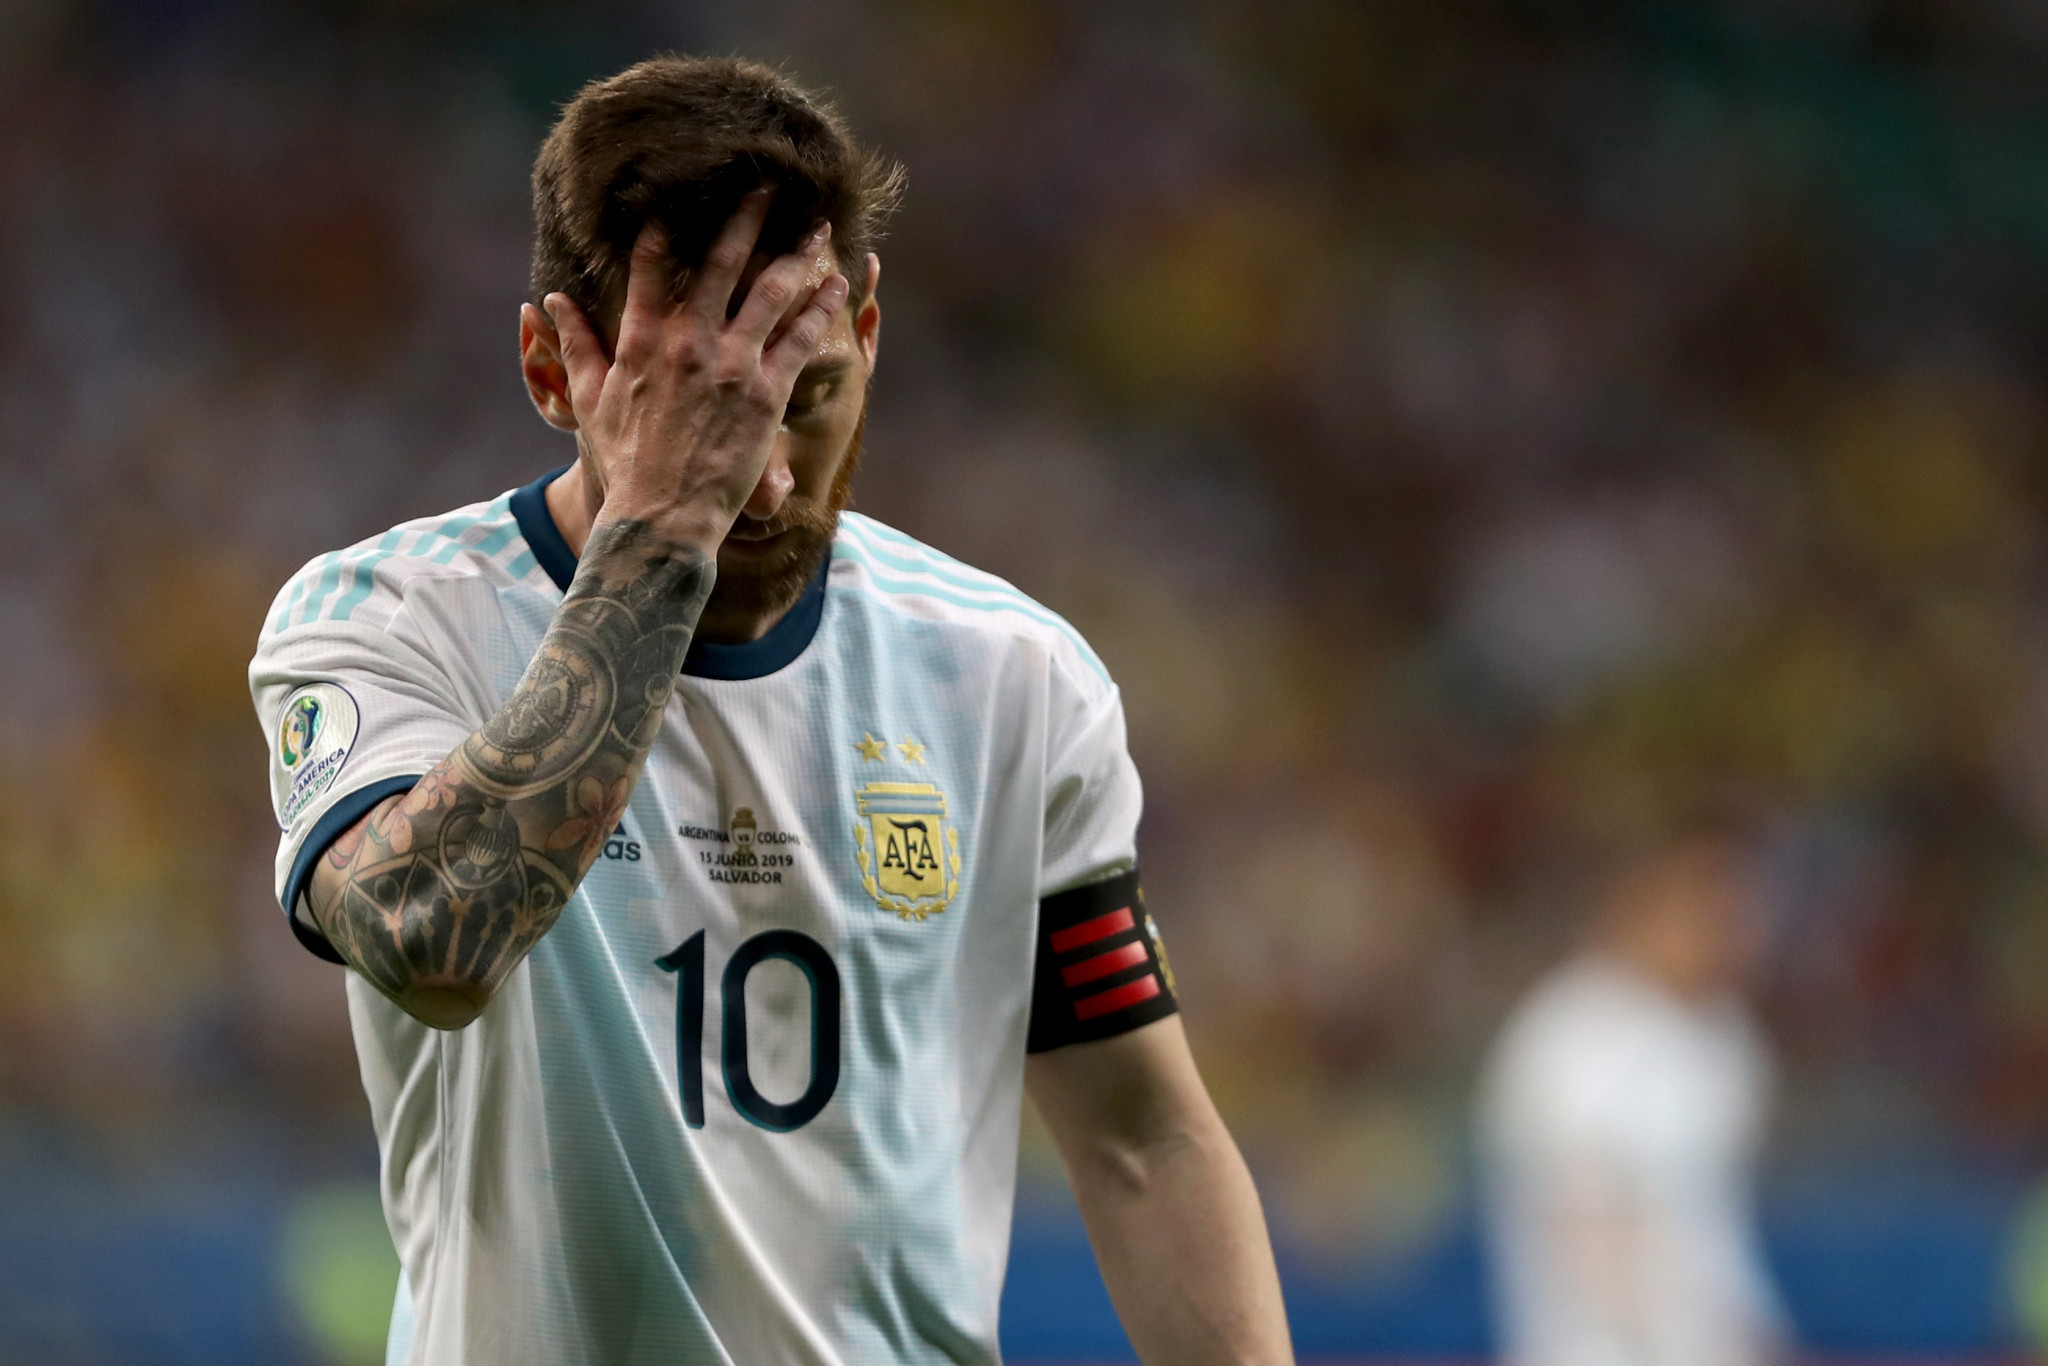 Lionel Messi's chance of playing in the Copa América on home Argentinian soil has gone after the event was moved to Brazil ©Getty Images